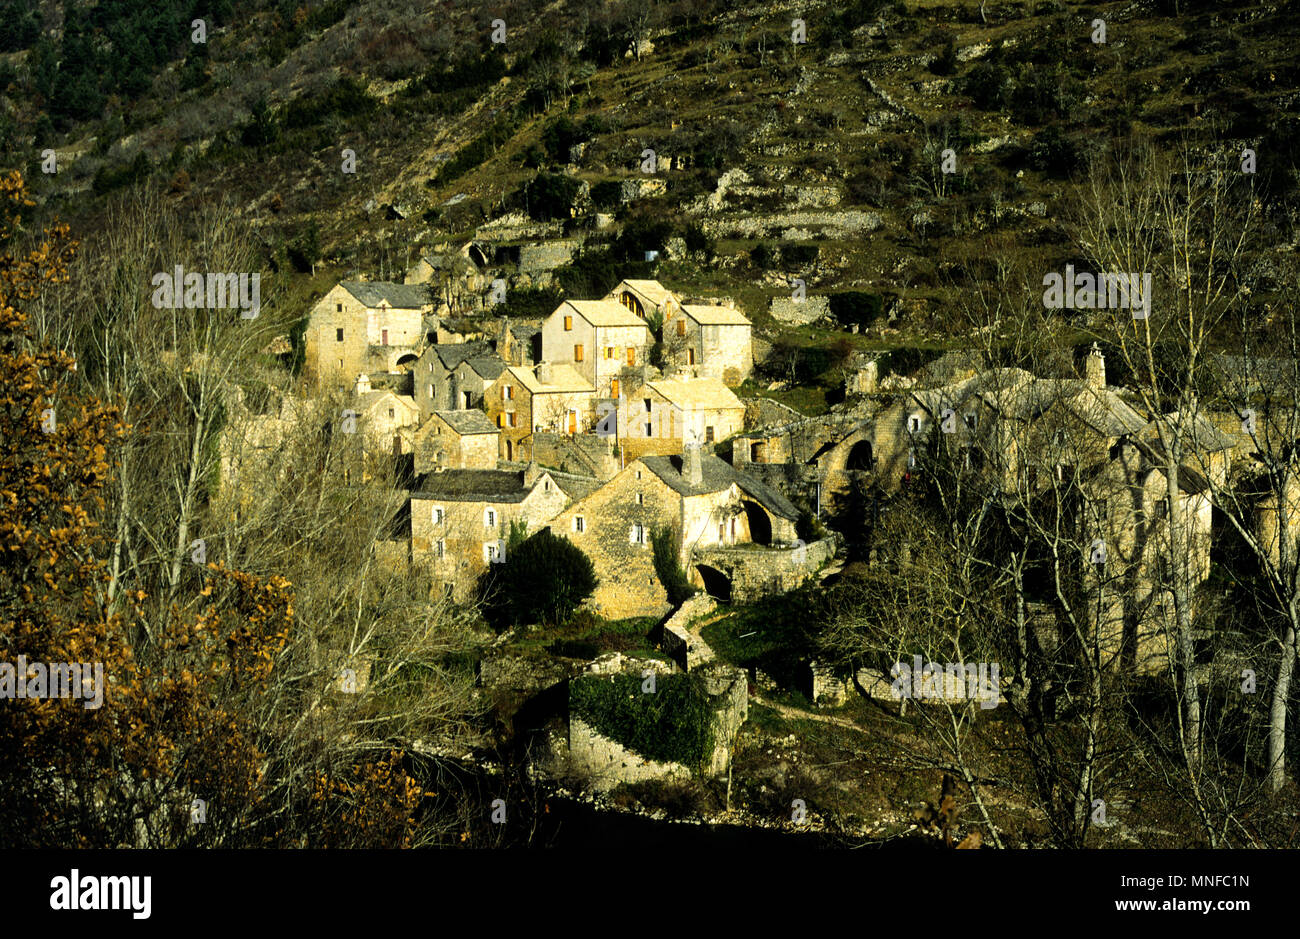 Stone Houses at Hauterives, on left bank of the Tarn River, Gorges du Tarn, Lozère,France - Stock Image